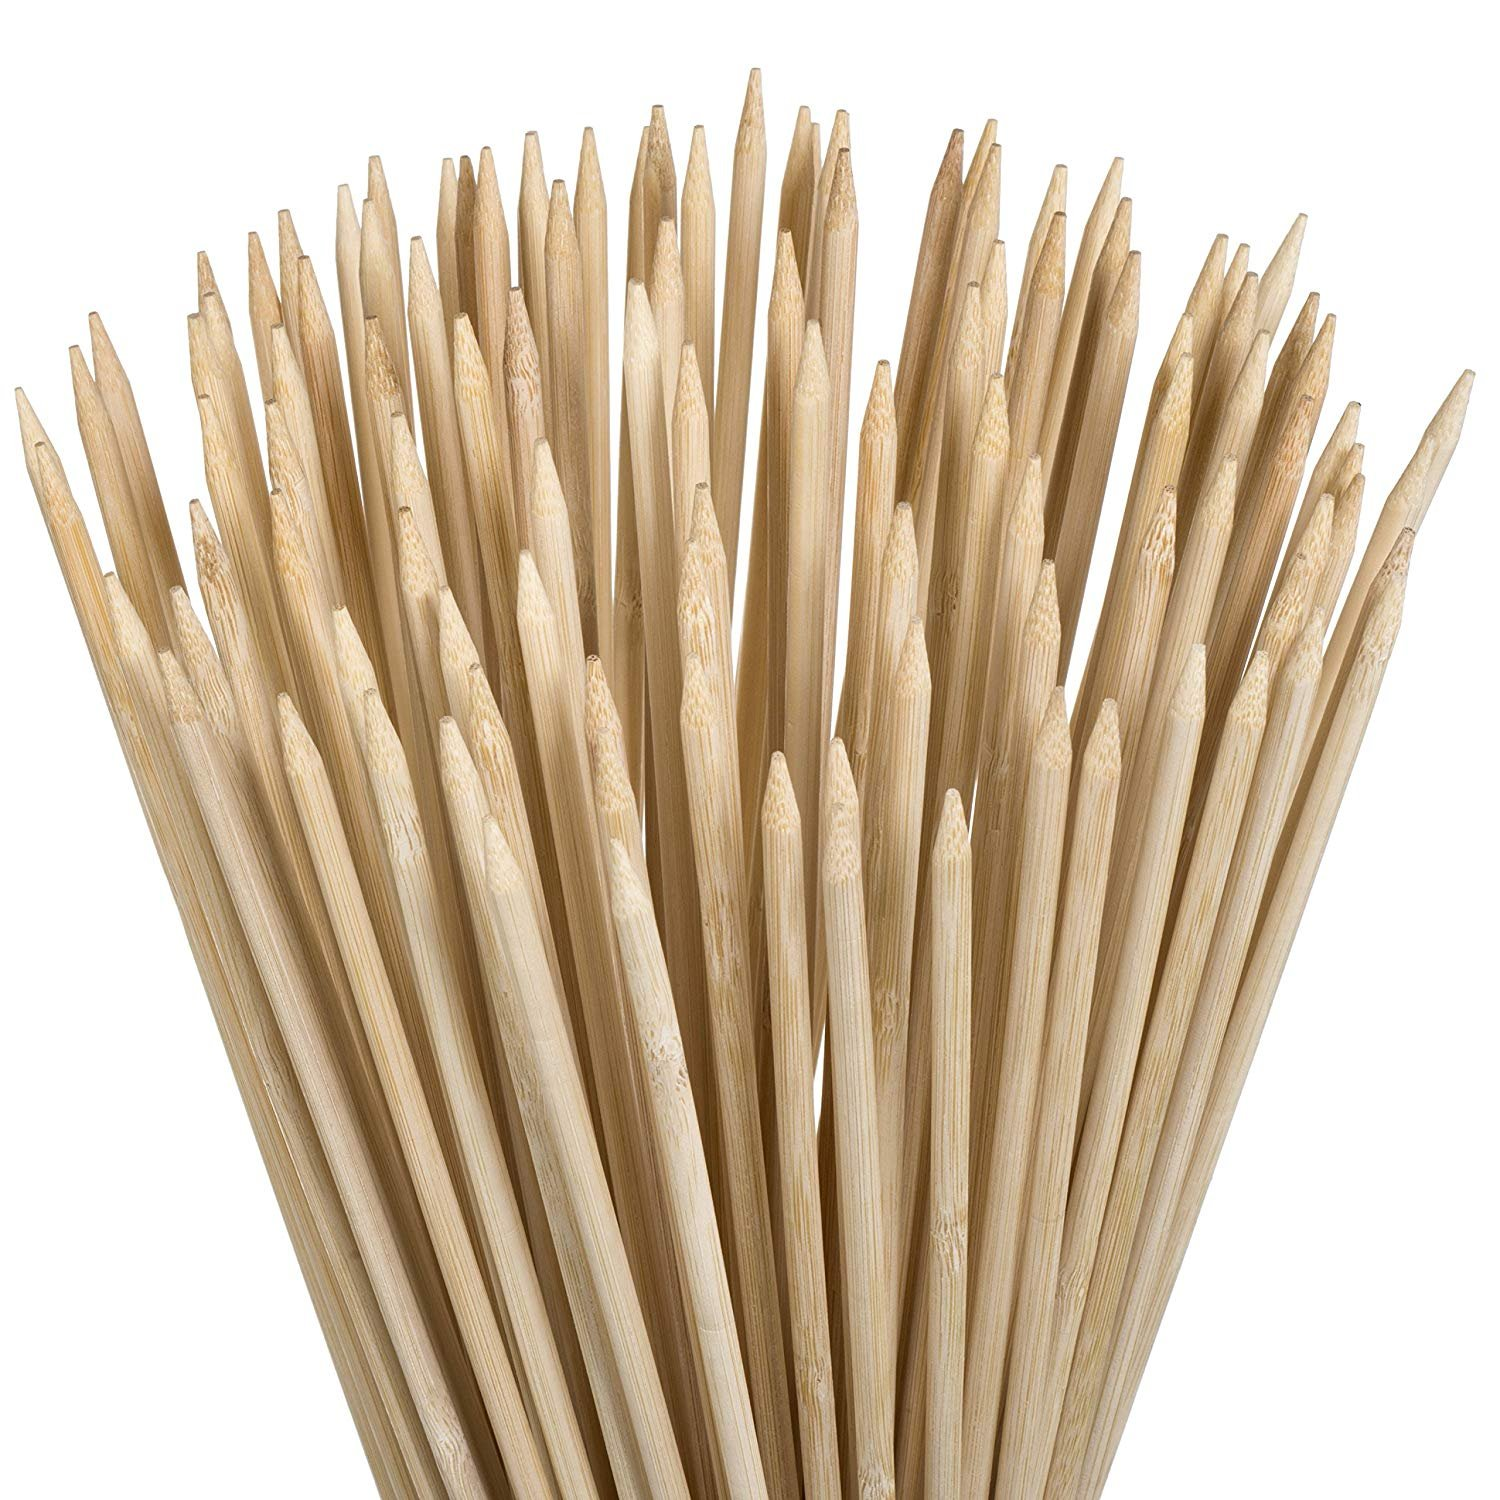 YEZZL Marshmallow Roasting Sticks Kebab Barbecue Skewers 100 Pieces 35Inch Long 6mm Extra Thick Heavy Duty Wooden Environmentally Safe 100% Biodegradable S'mores Sticks Bonus Included Outdoor Fun